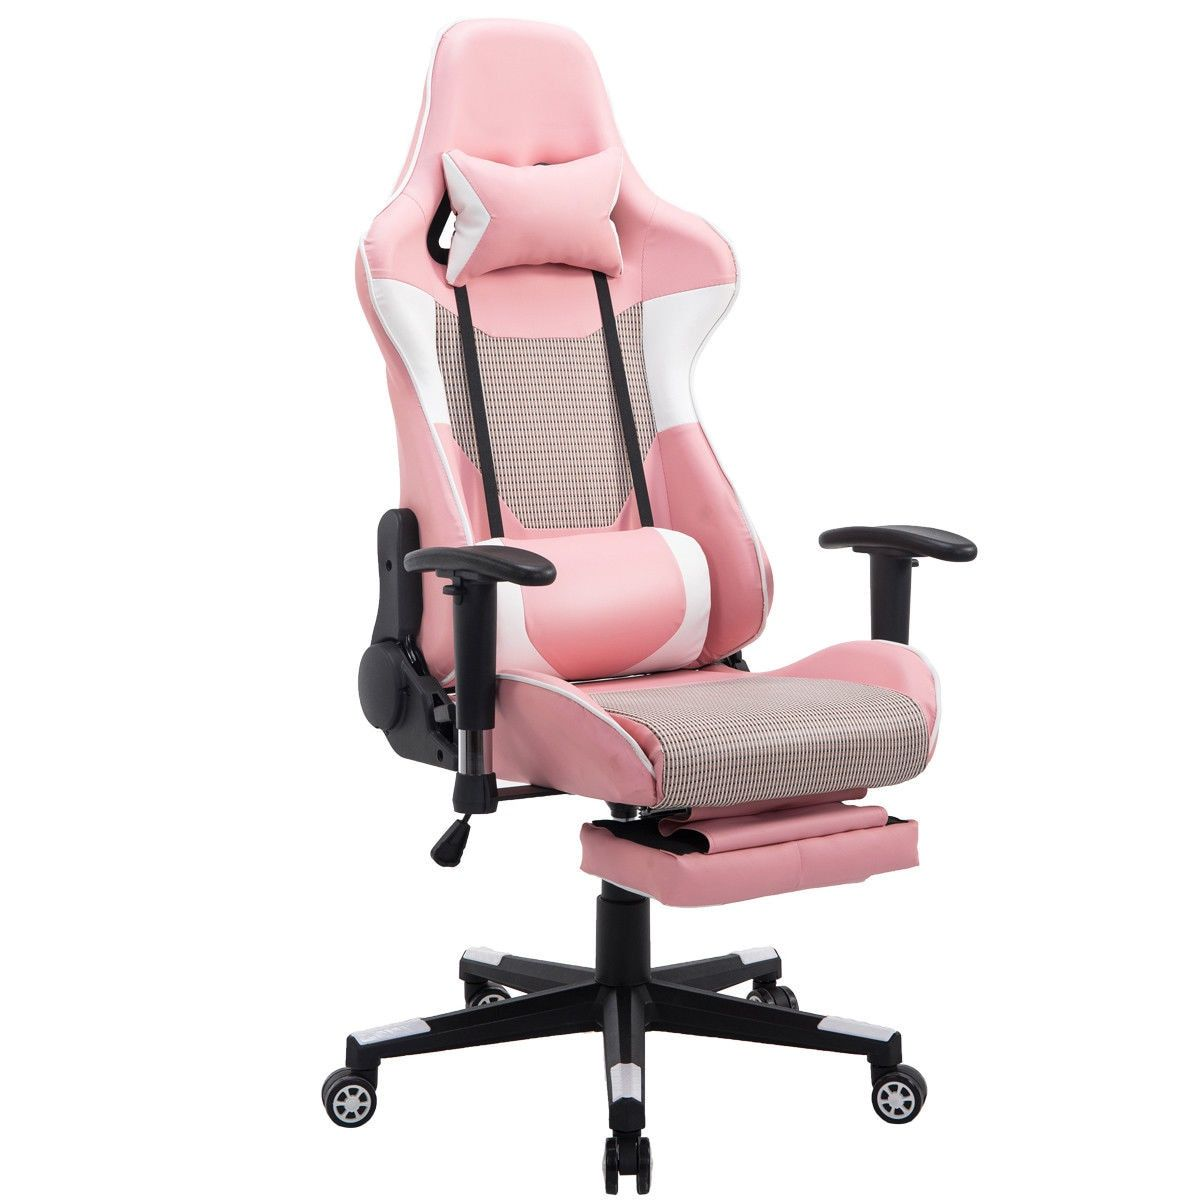 Giantex Modern Reclining Gaming Chair High Back Racing Office Chair With Lumbar Support Footrest Modern Armchairs Office Chair Gaming Chair Best Office Chair